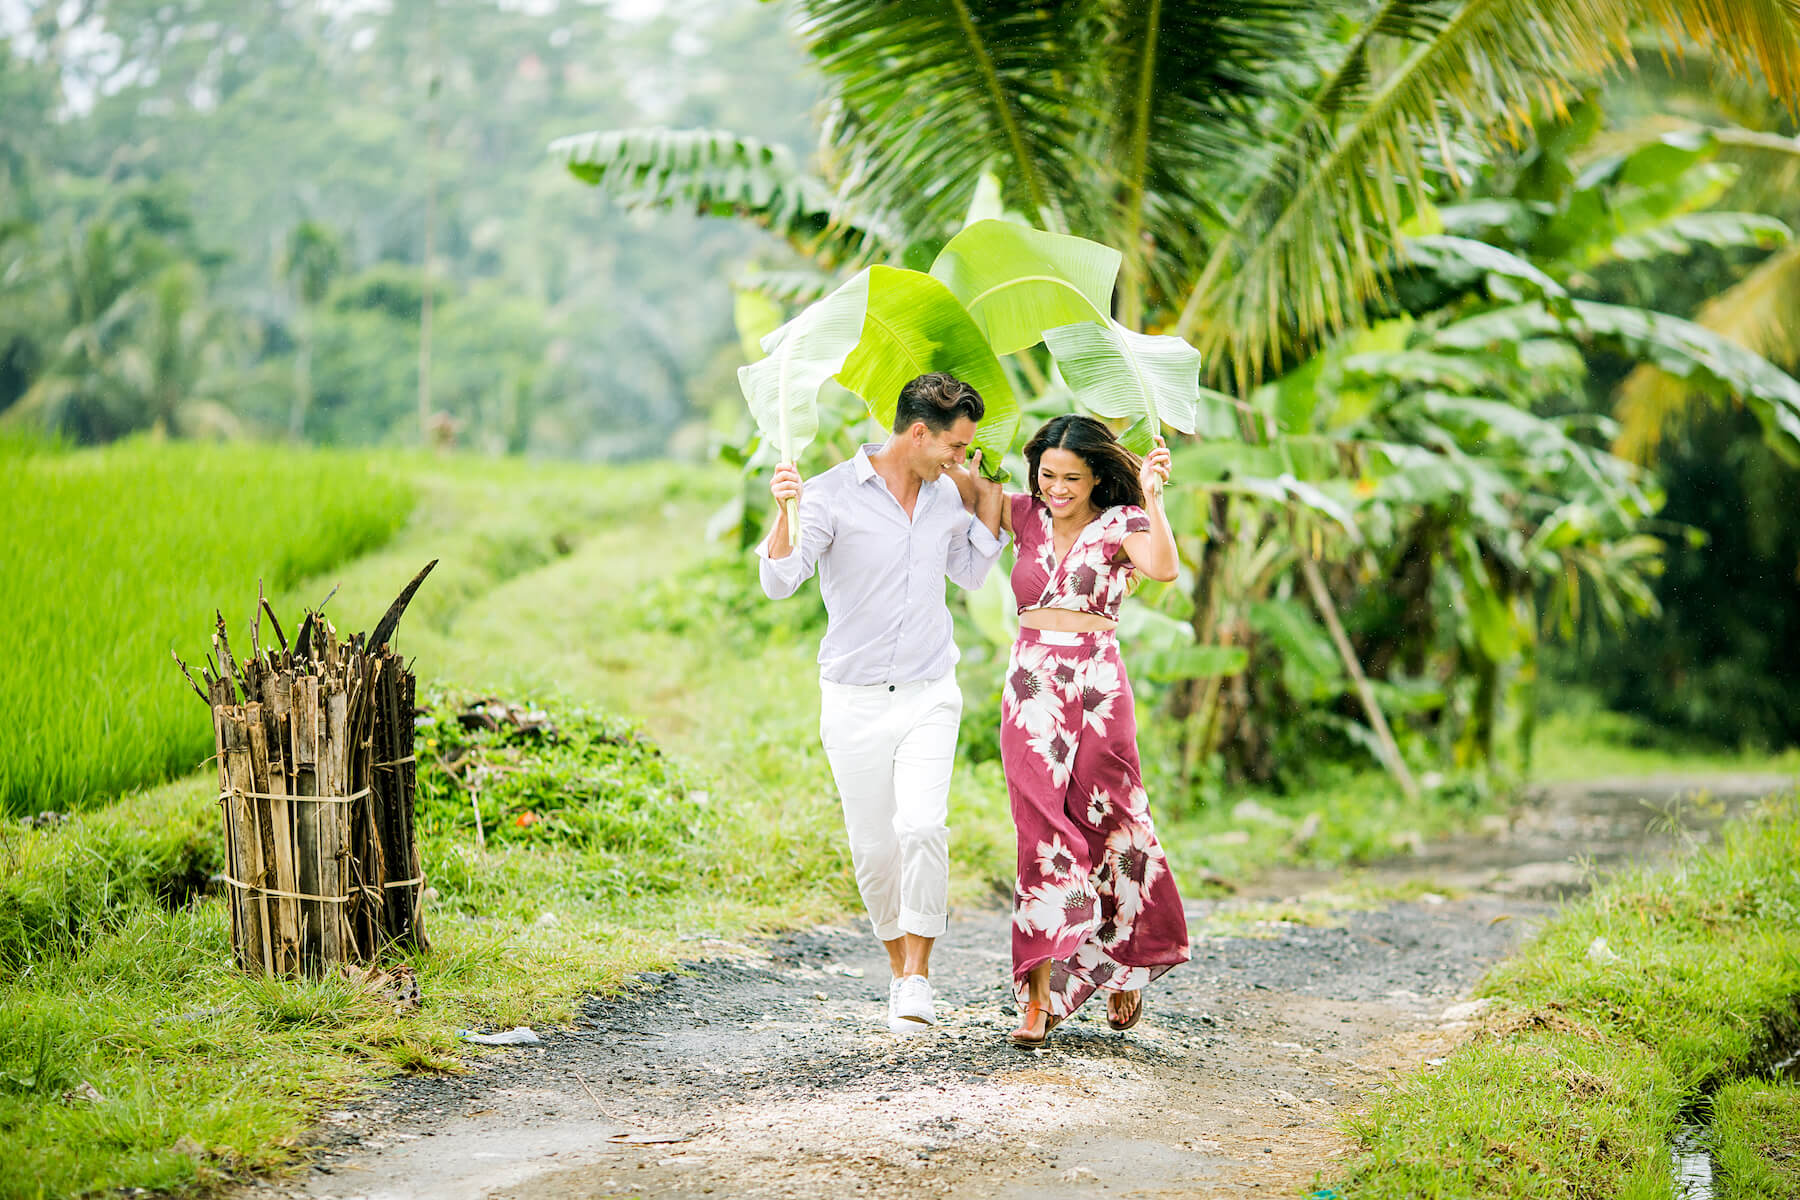 Couple running from the rain together using giant leaves as umbrellas in Bali, Indonesia